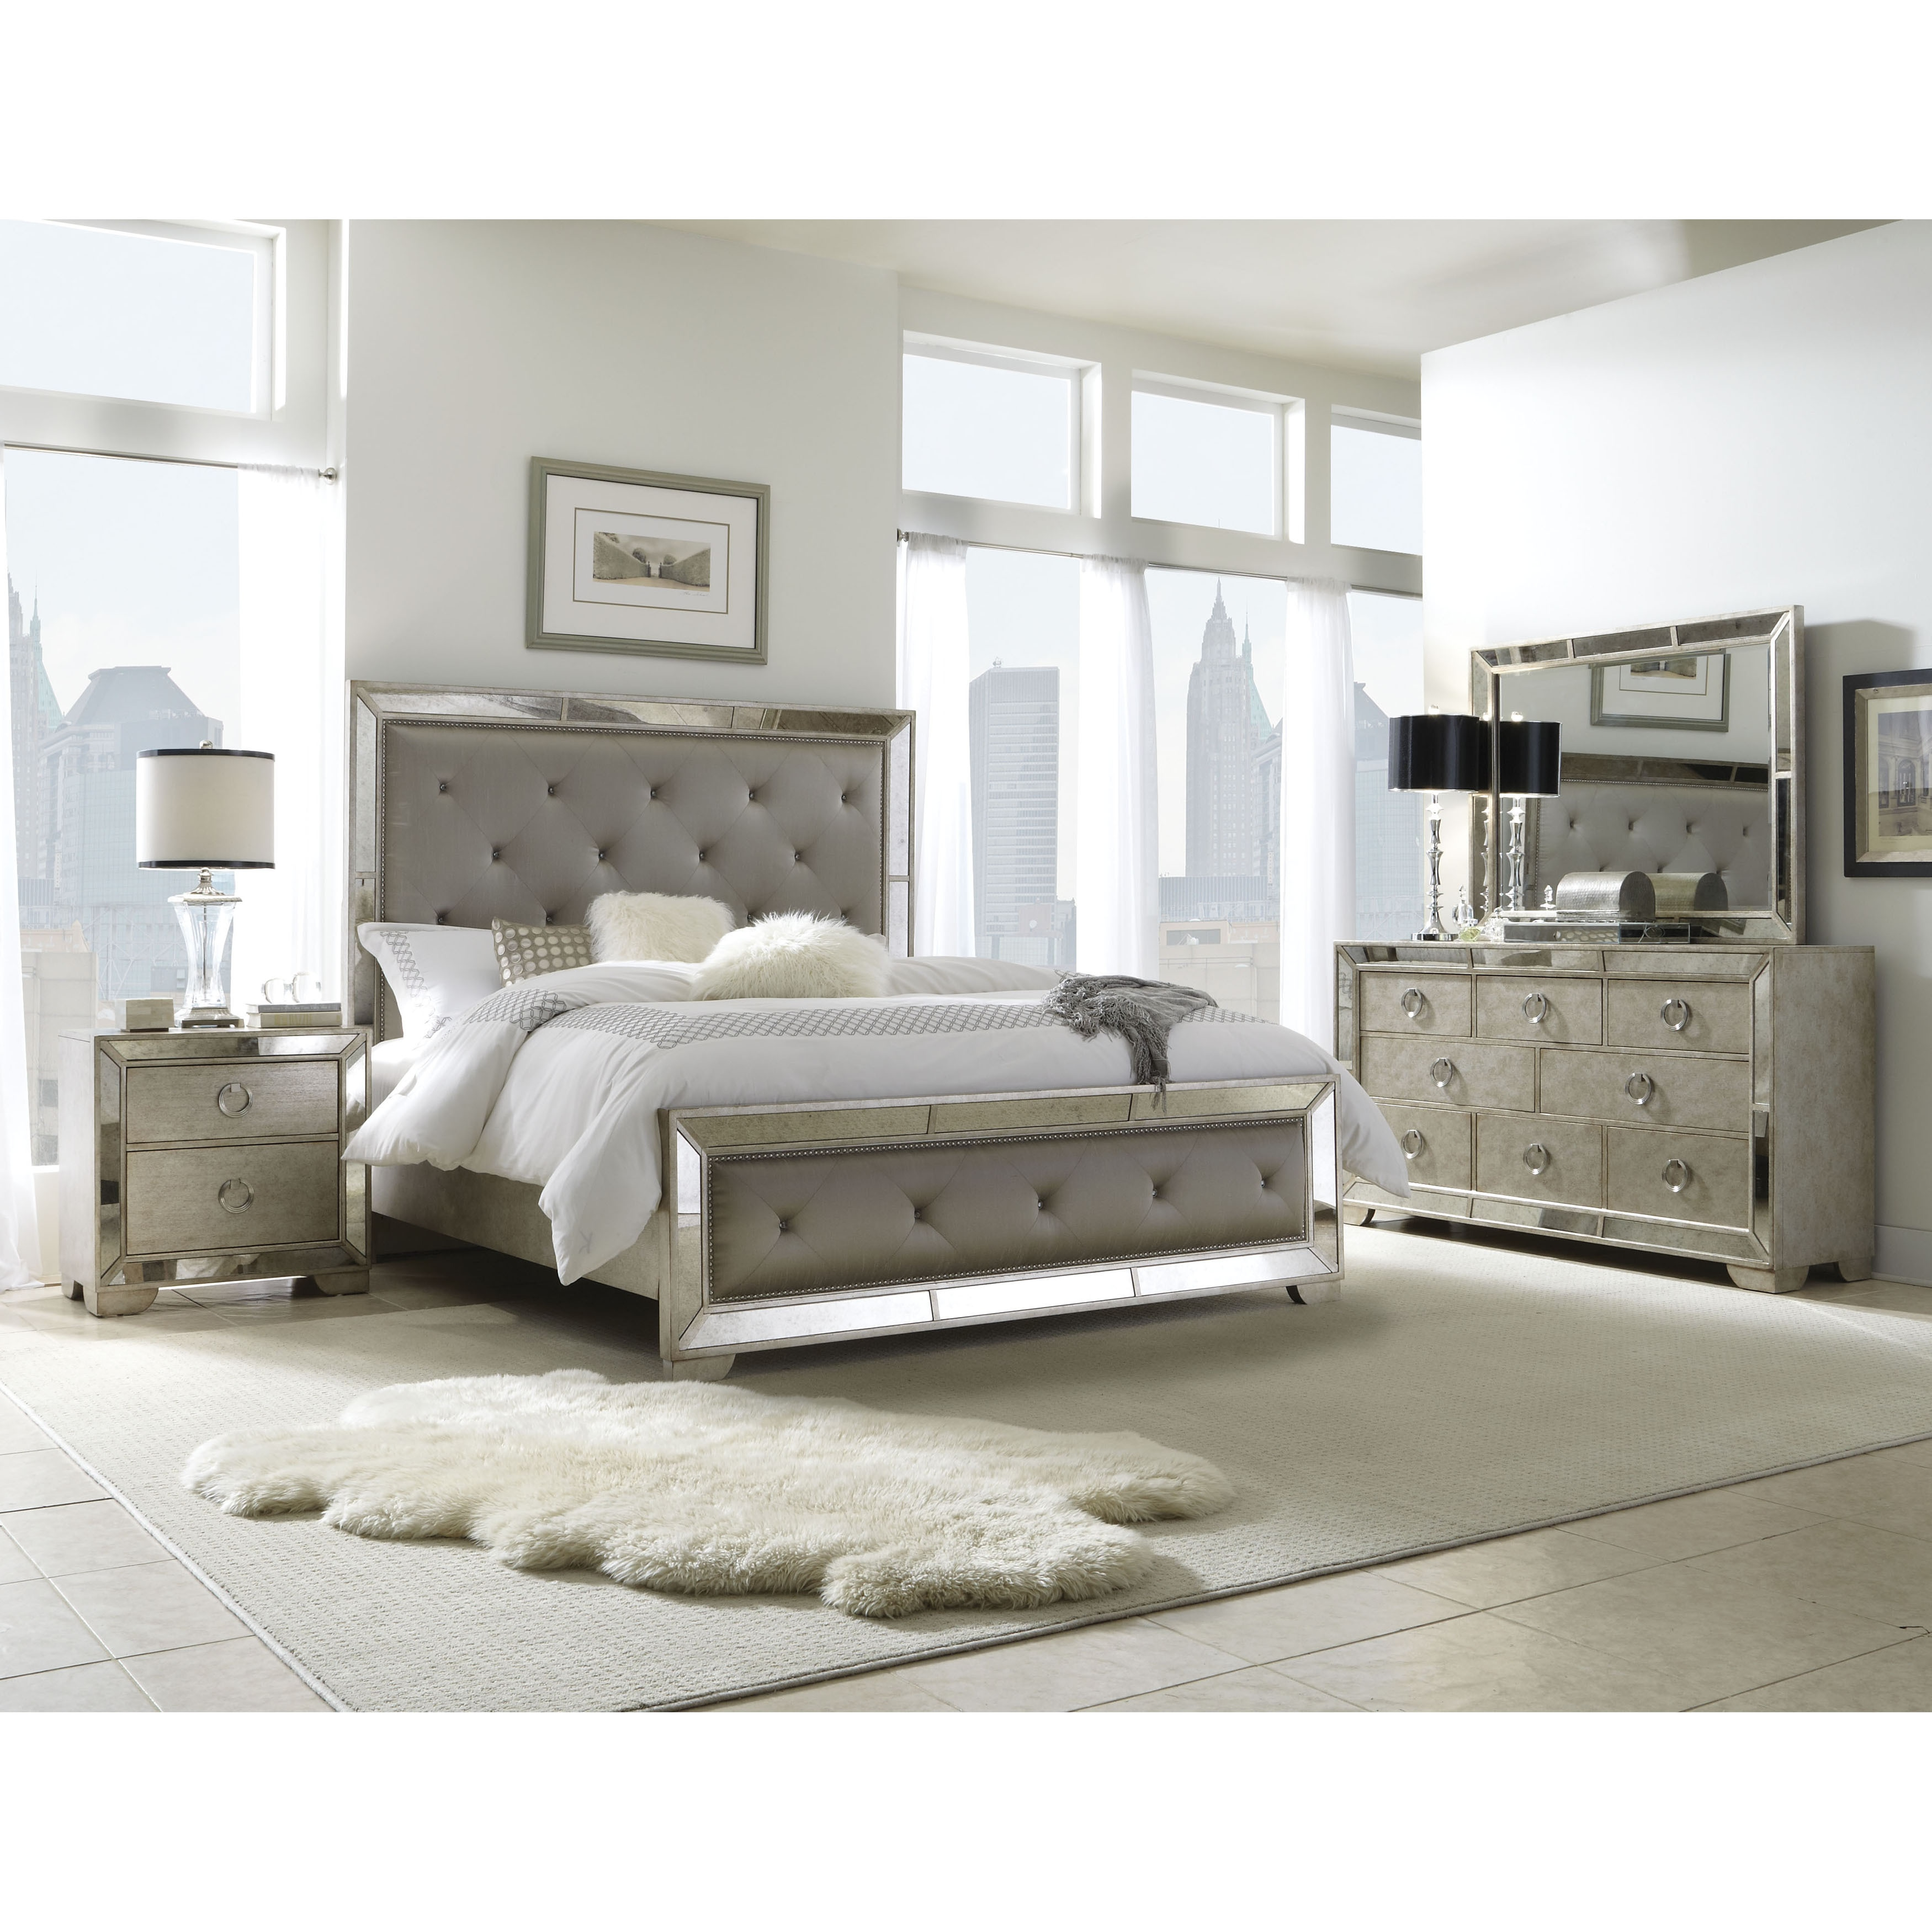 Celine 5-piece Mirrored and Upholstered Tufted King-size Bedroom Set at Sears.com